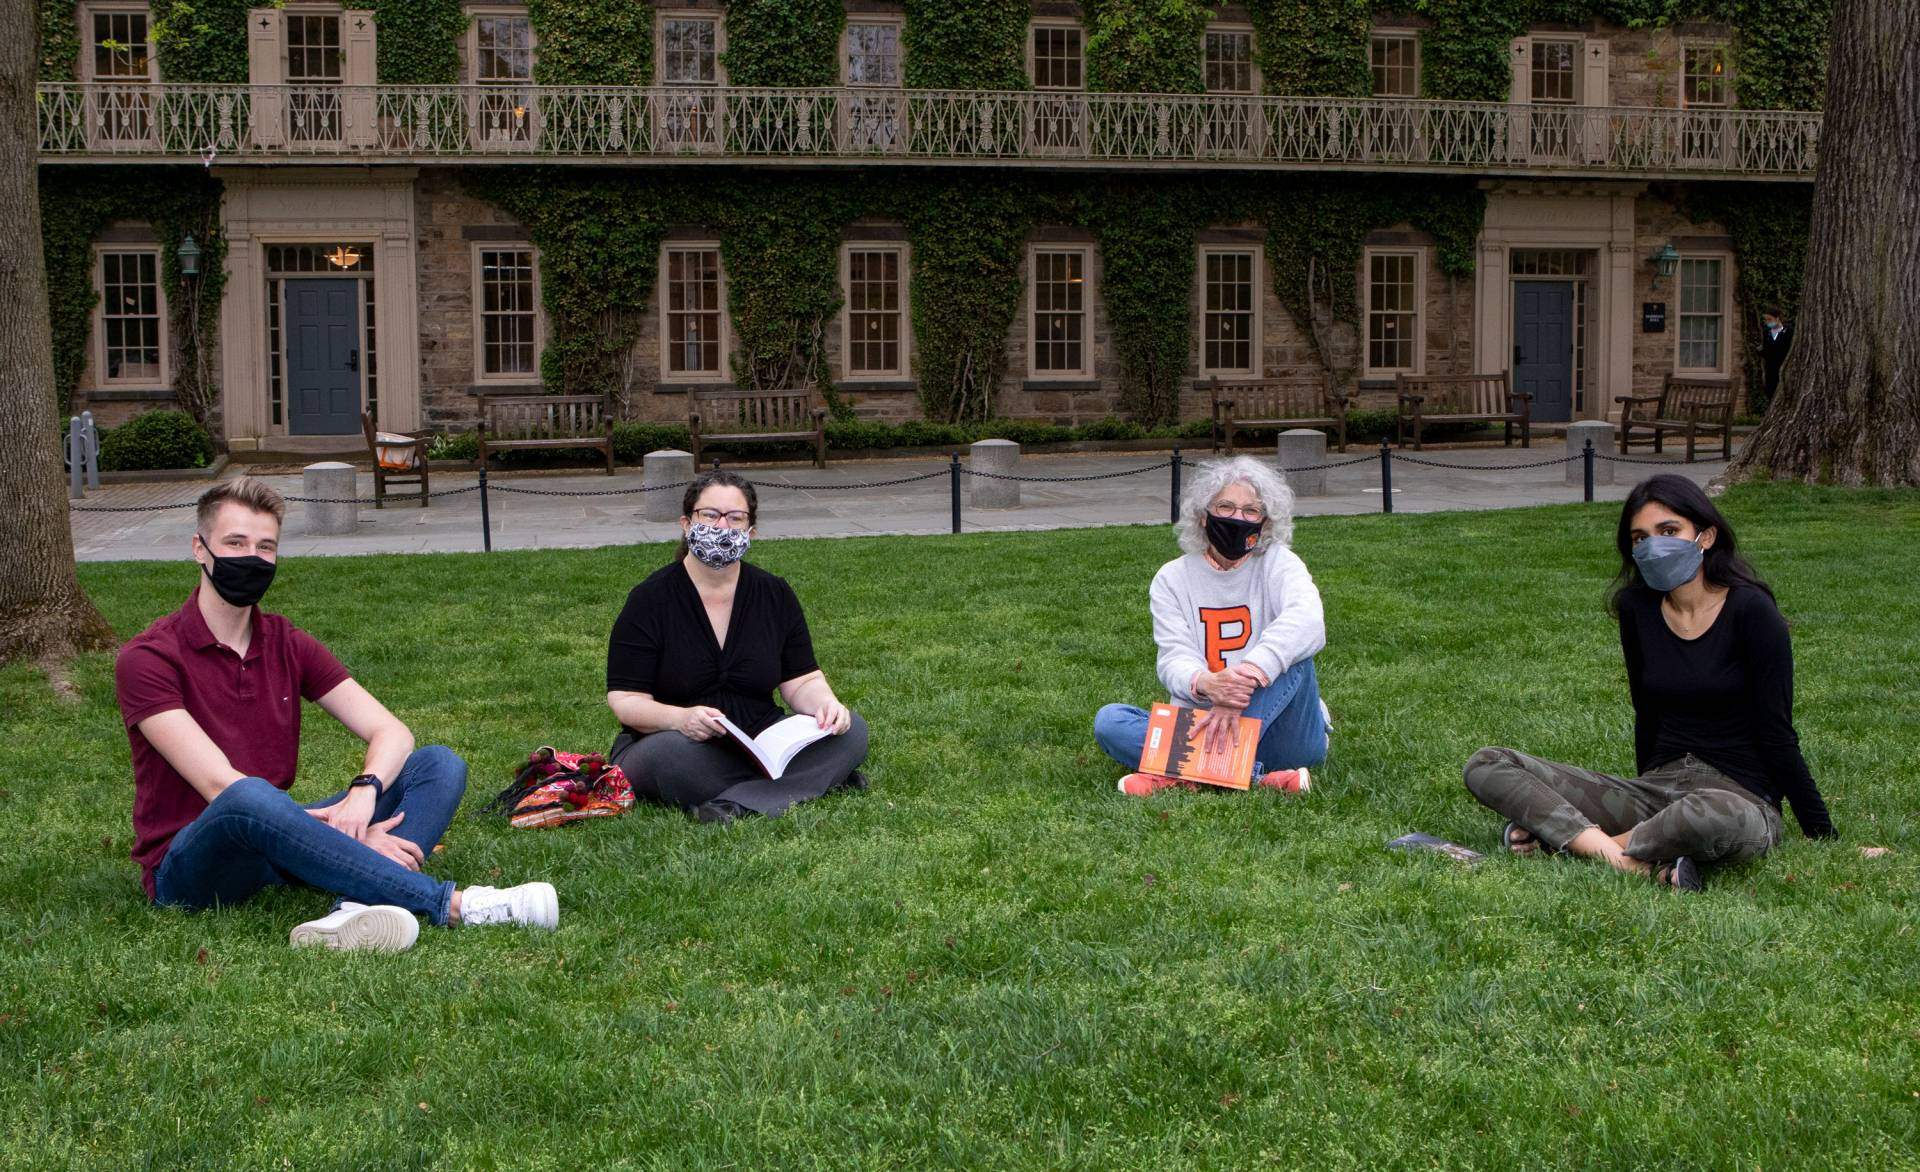 Jill Dolan holds a precept on the lawn outside Morrison Hall with with Beth Stroud and 2 students